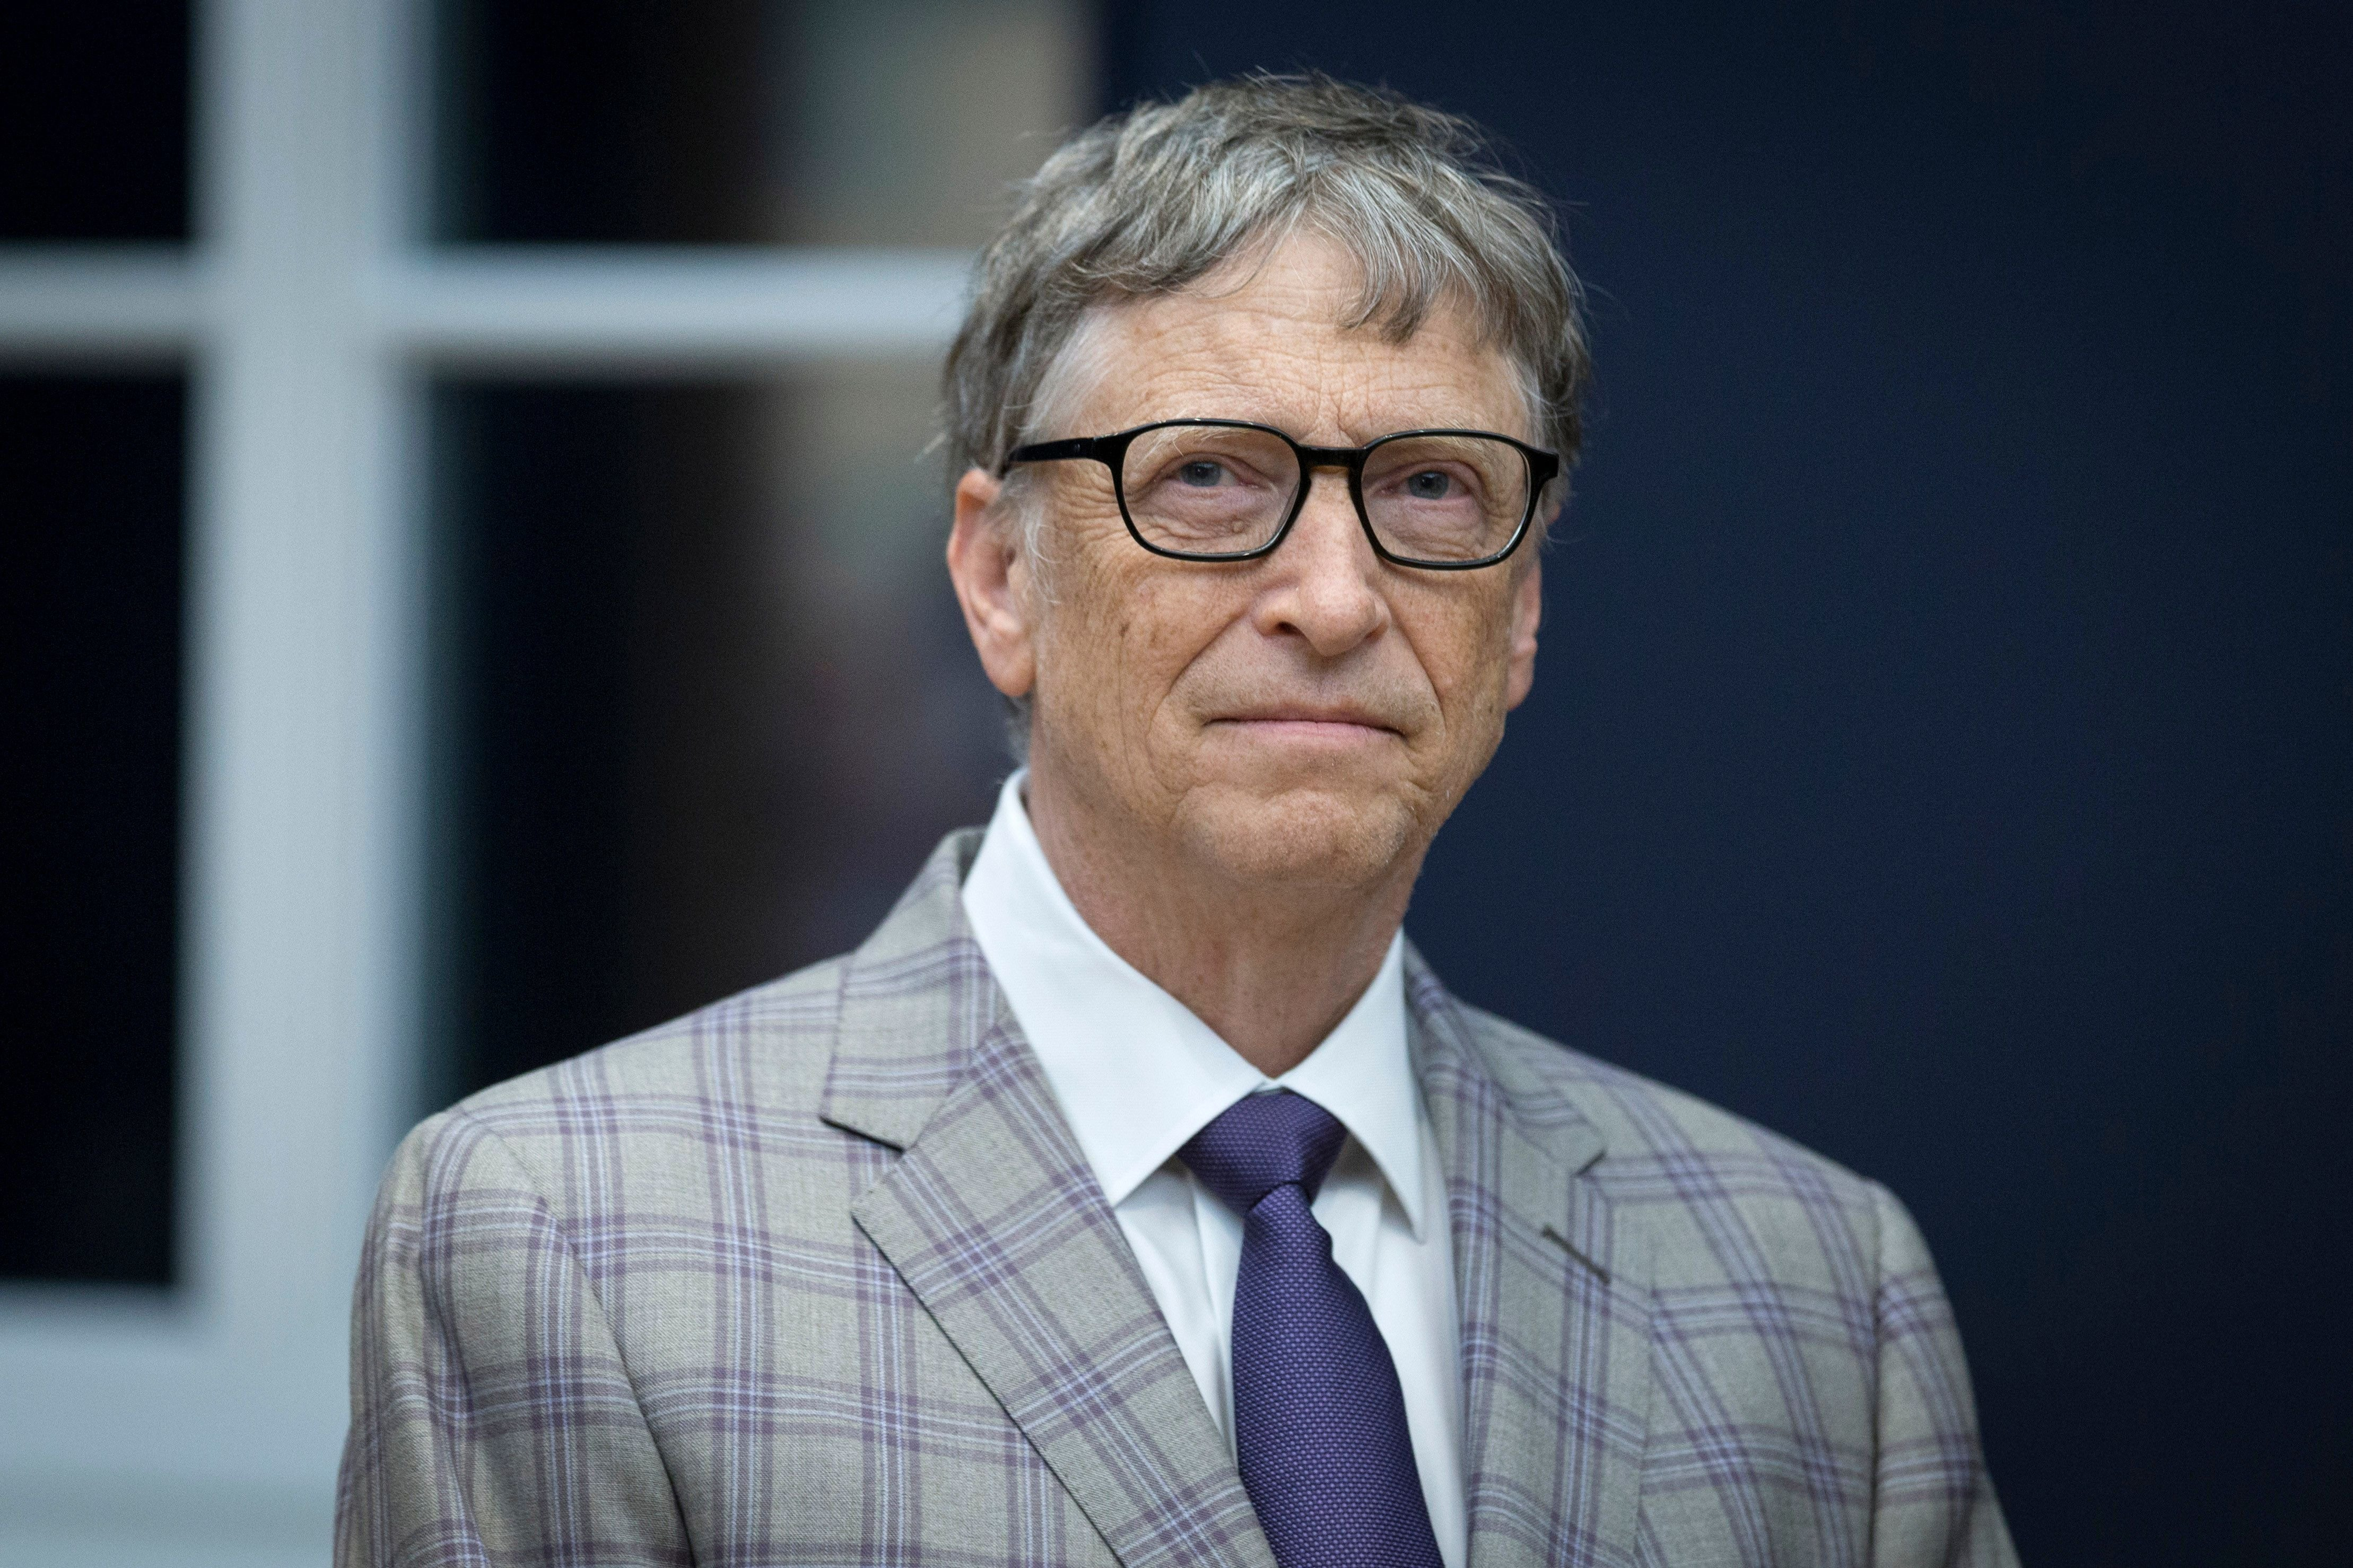 Bill Gates at the opening of the Barberini Museum on January 20, 2017 in Potsdam   Photo: Getty Images